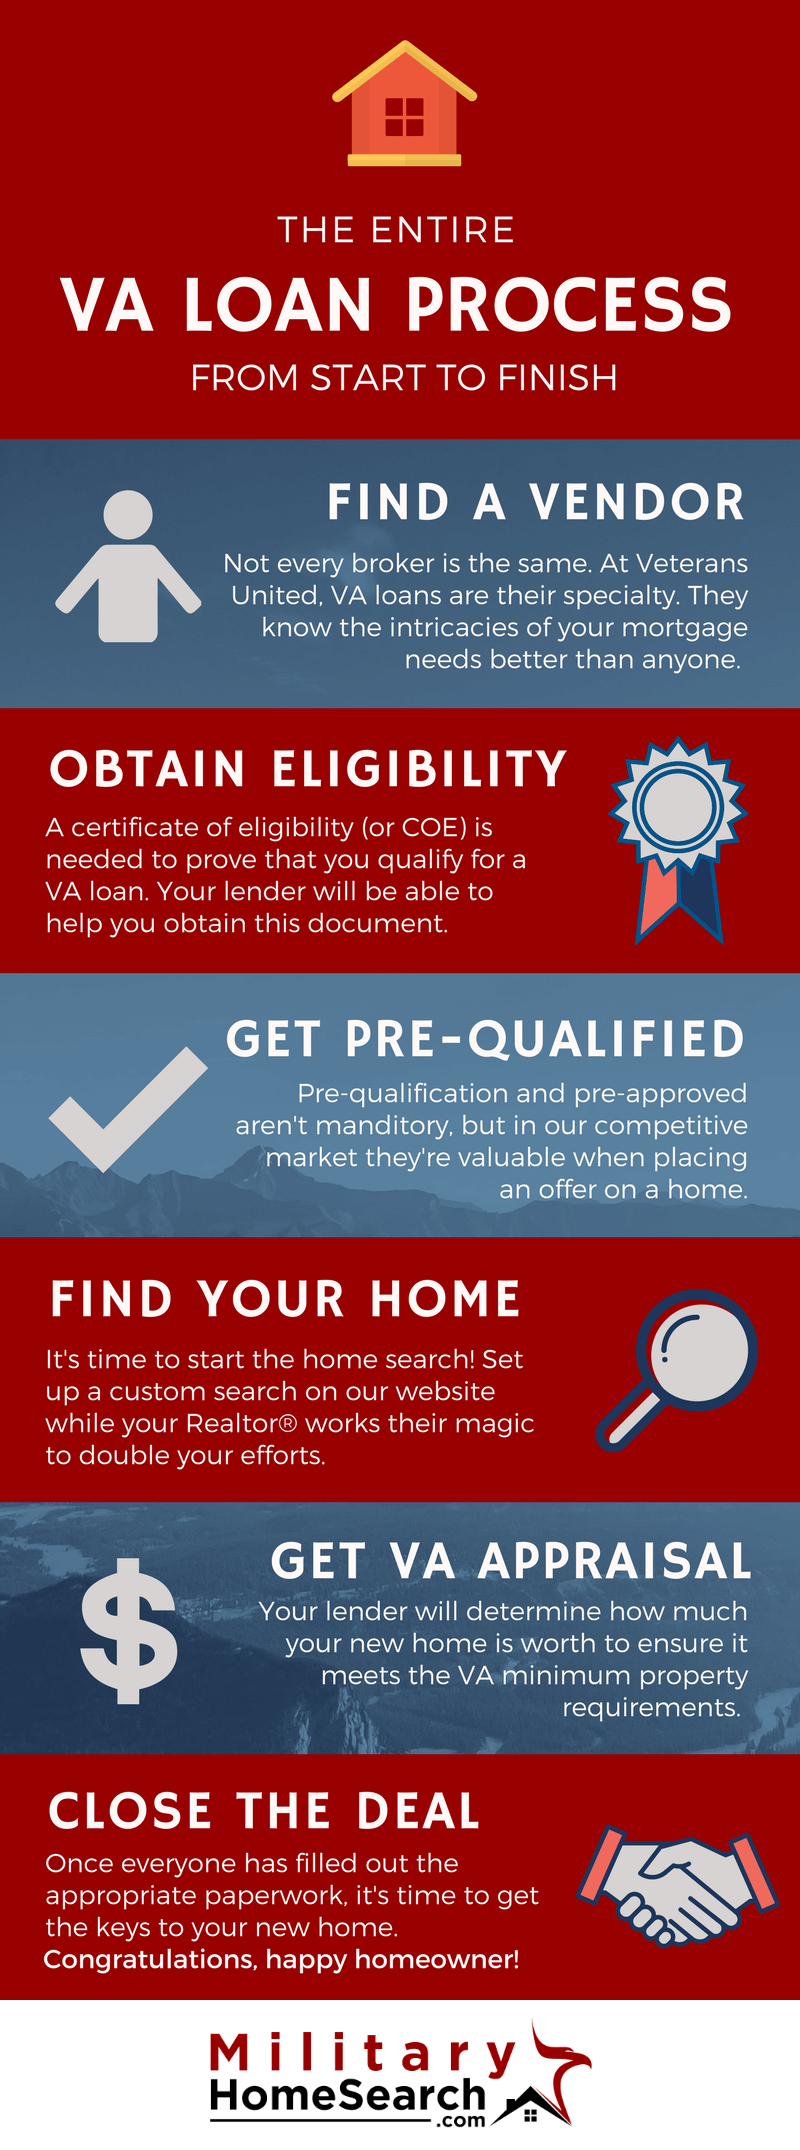 The va loan process from start to finish mortgage information va loan process infographic xflitez Images